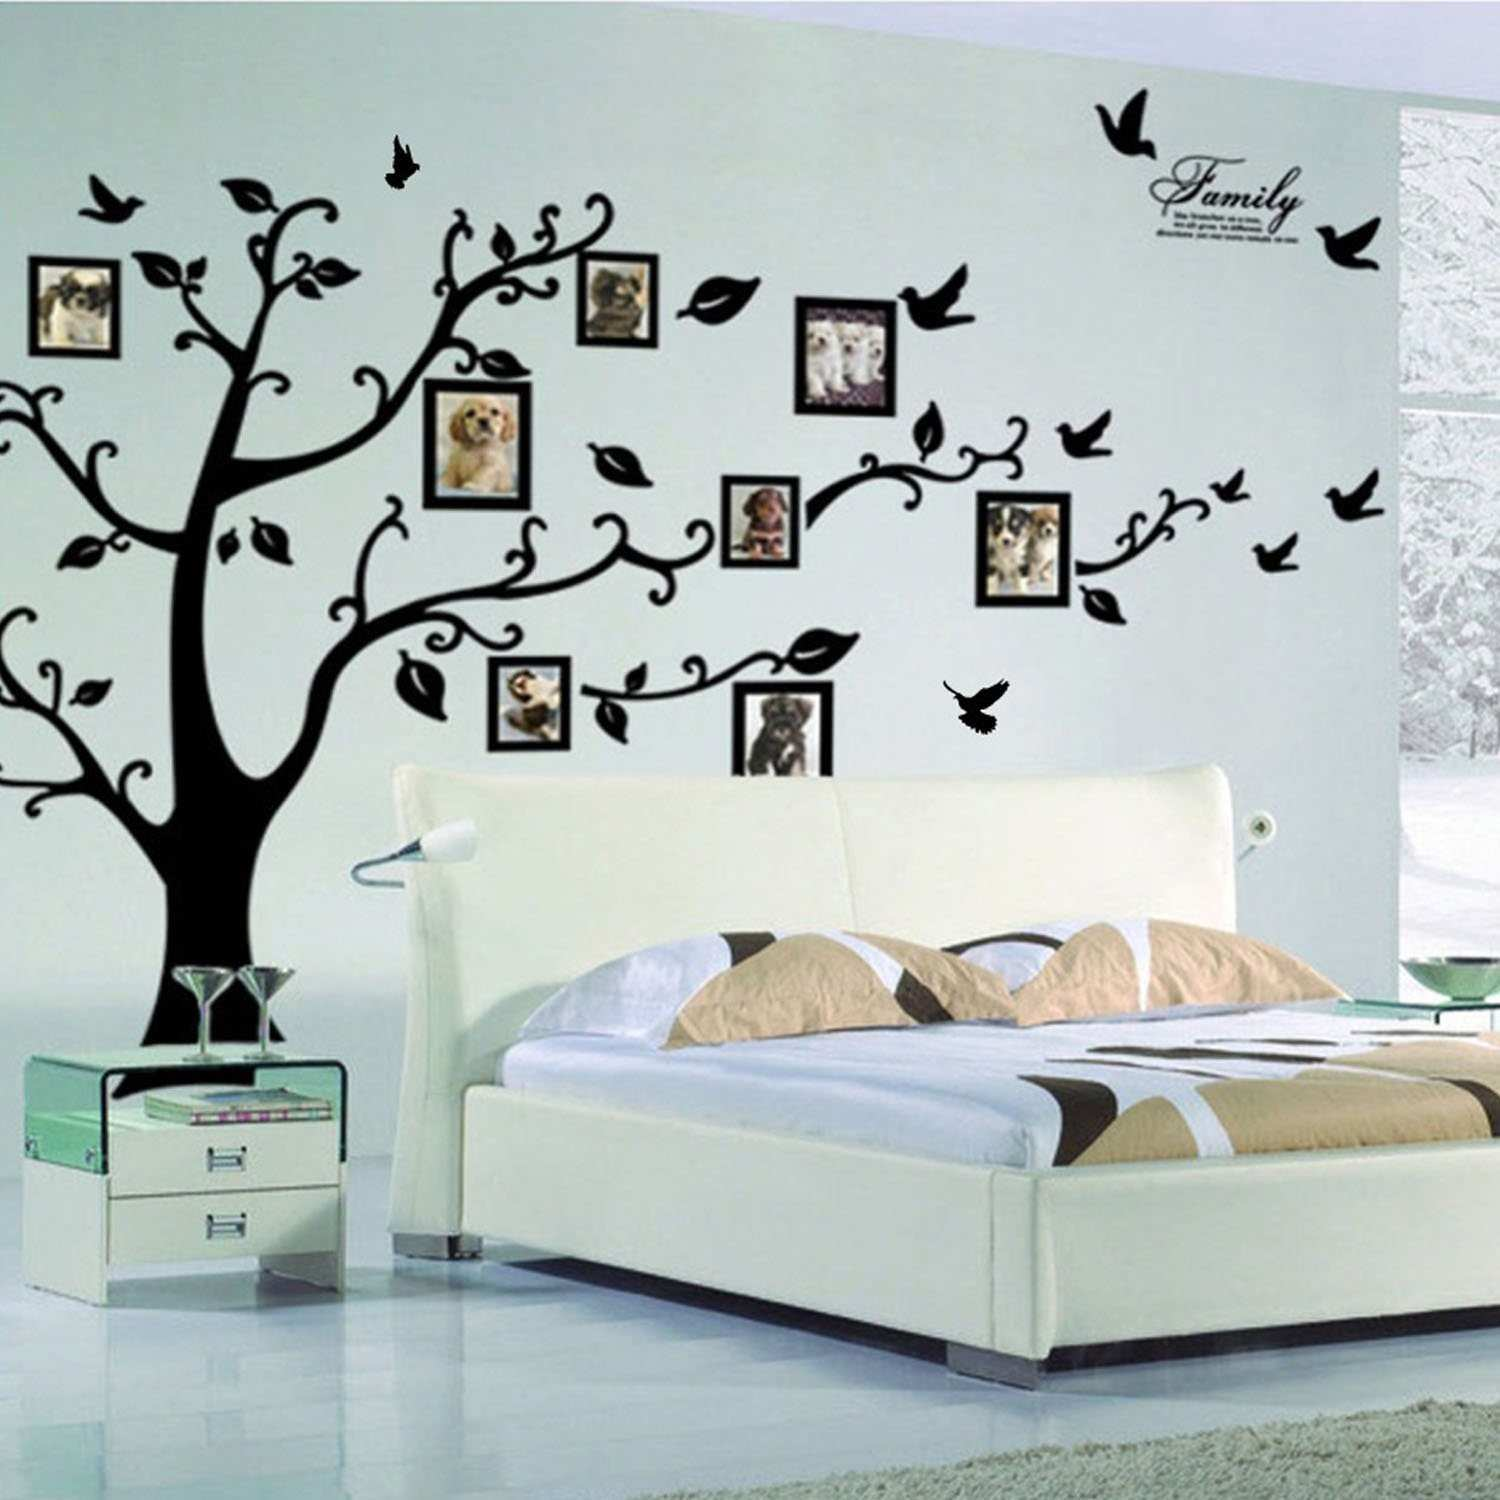 Wall Stickers Amazon